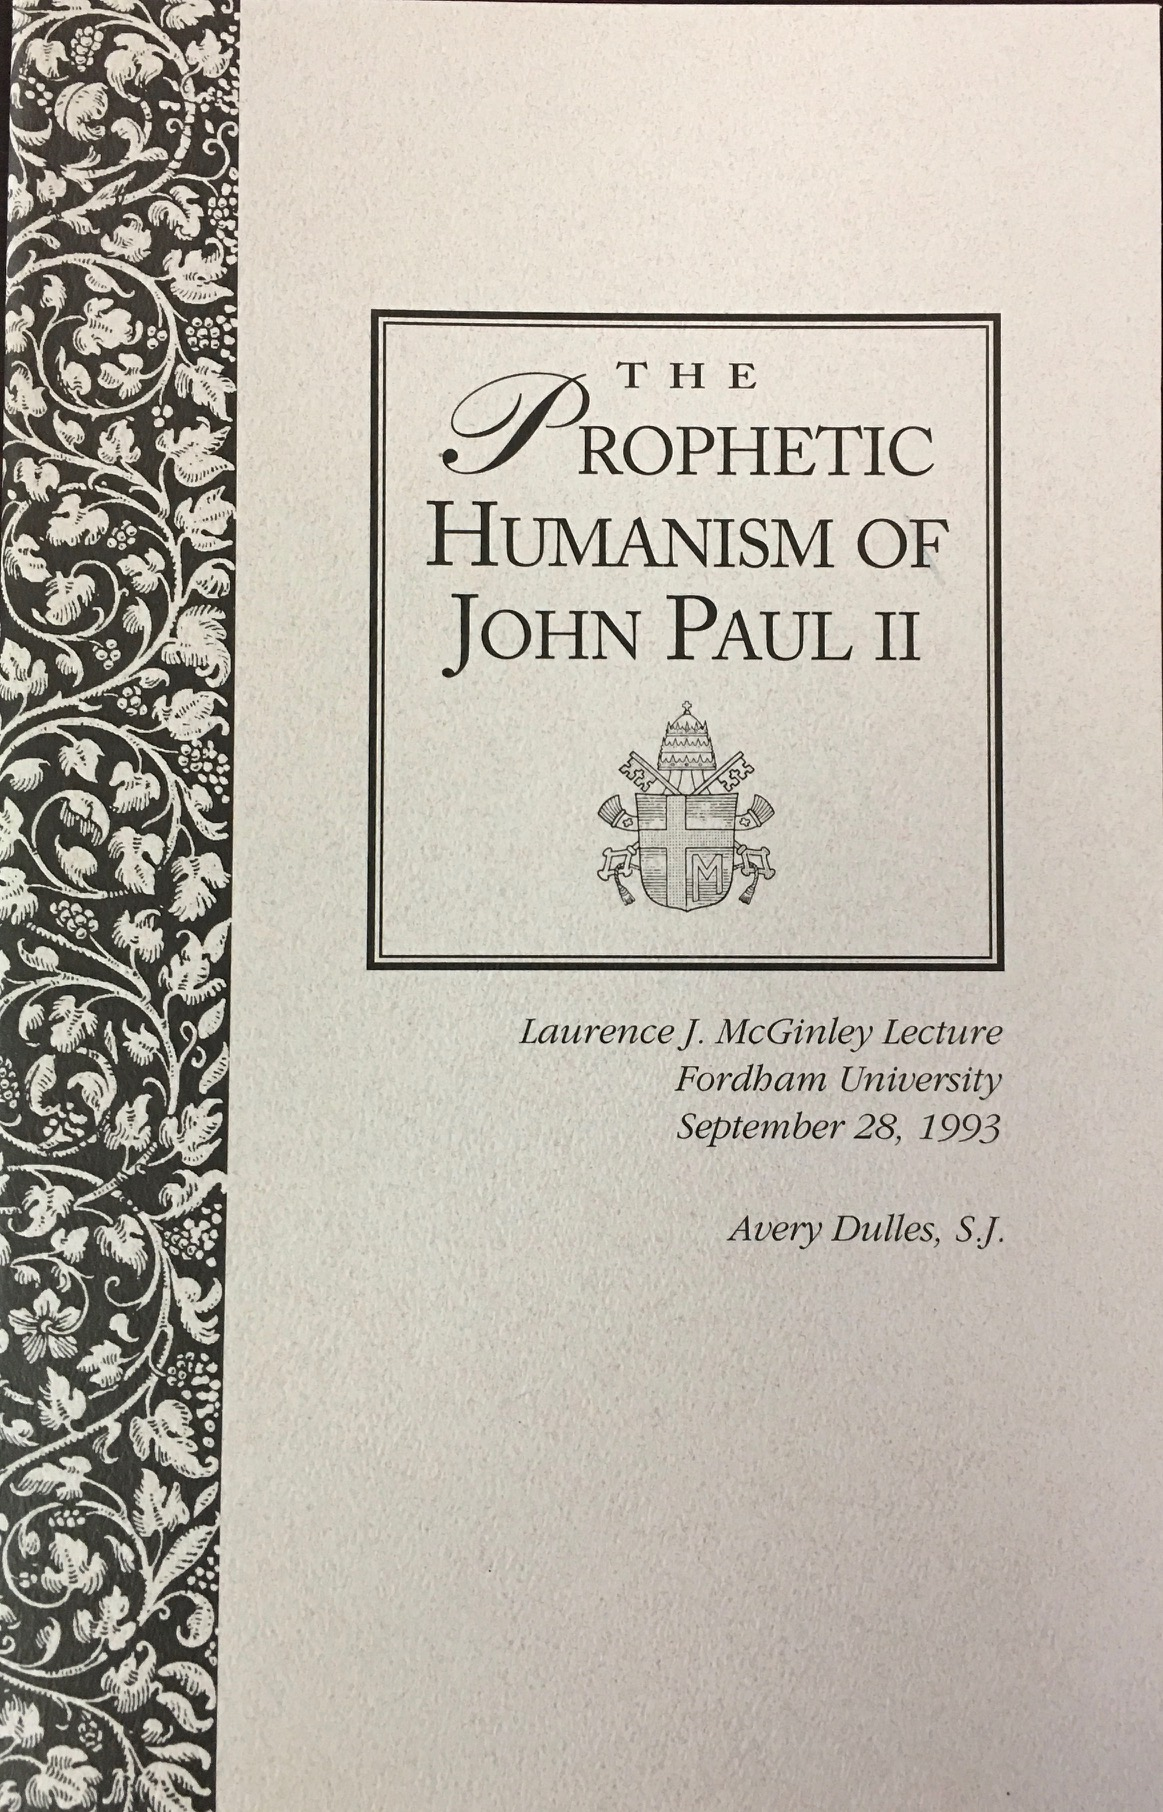 Image for The Prophetic Humanism of John Paul II (Lawrence J. McGinley Lecture - Fordham University, September 28, 1993)